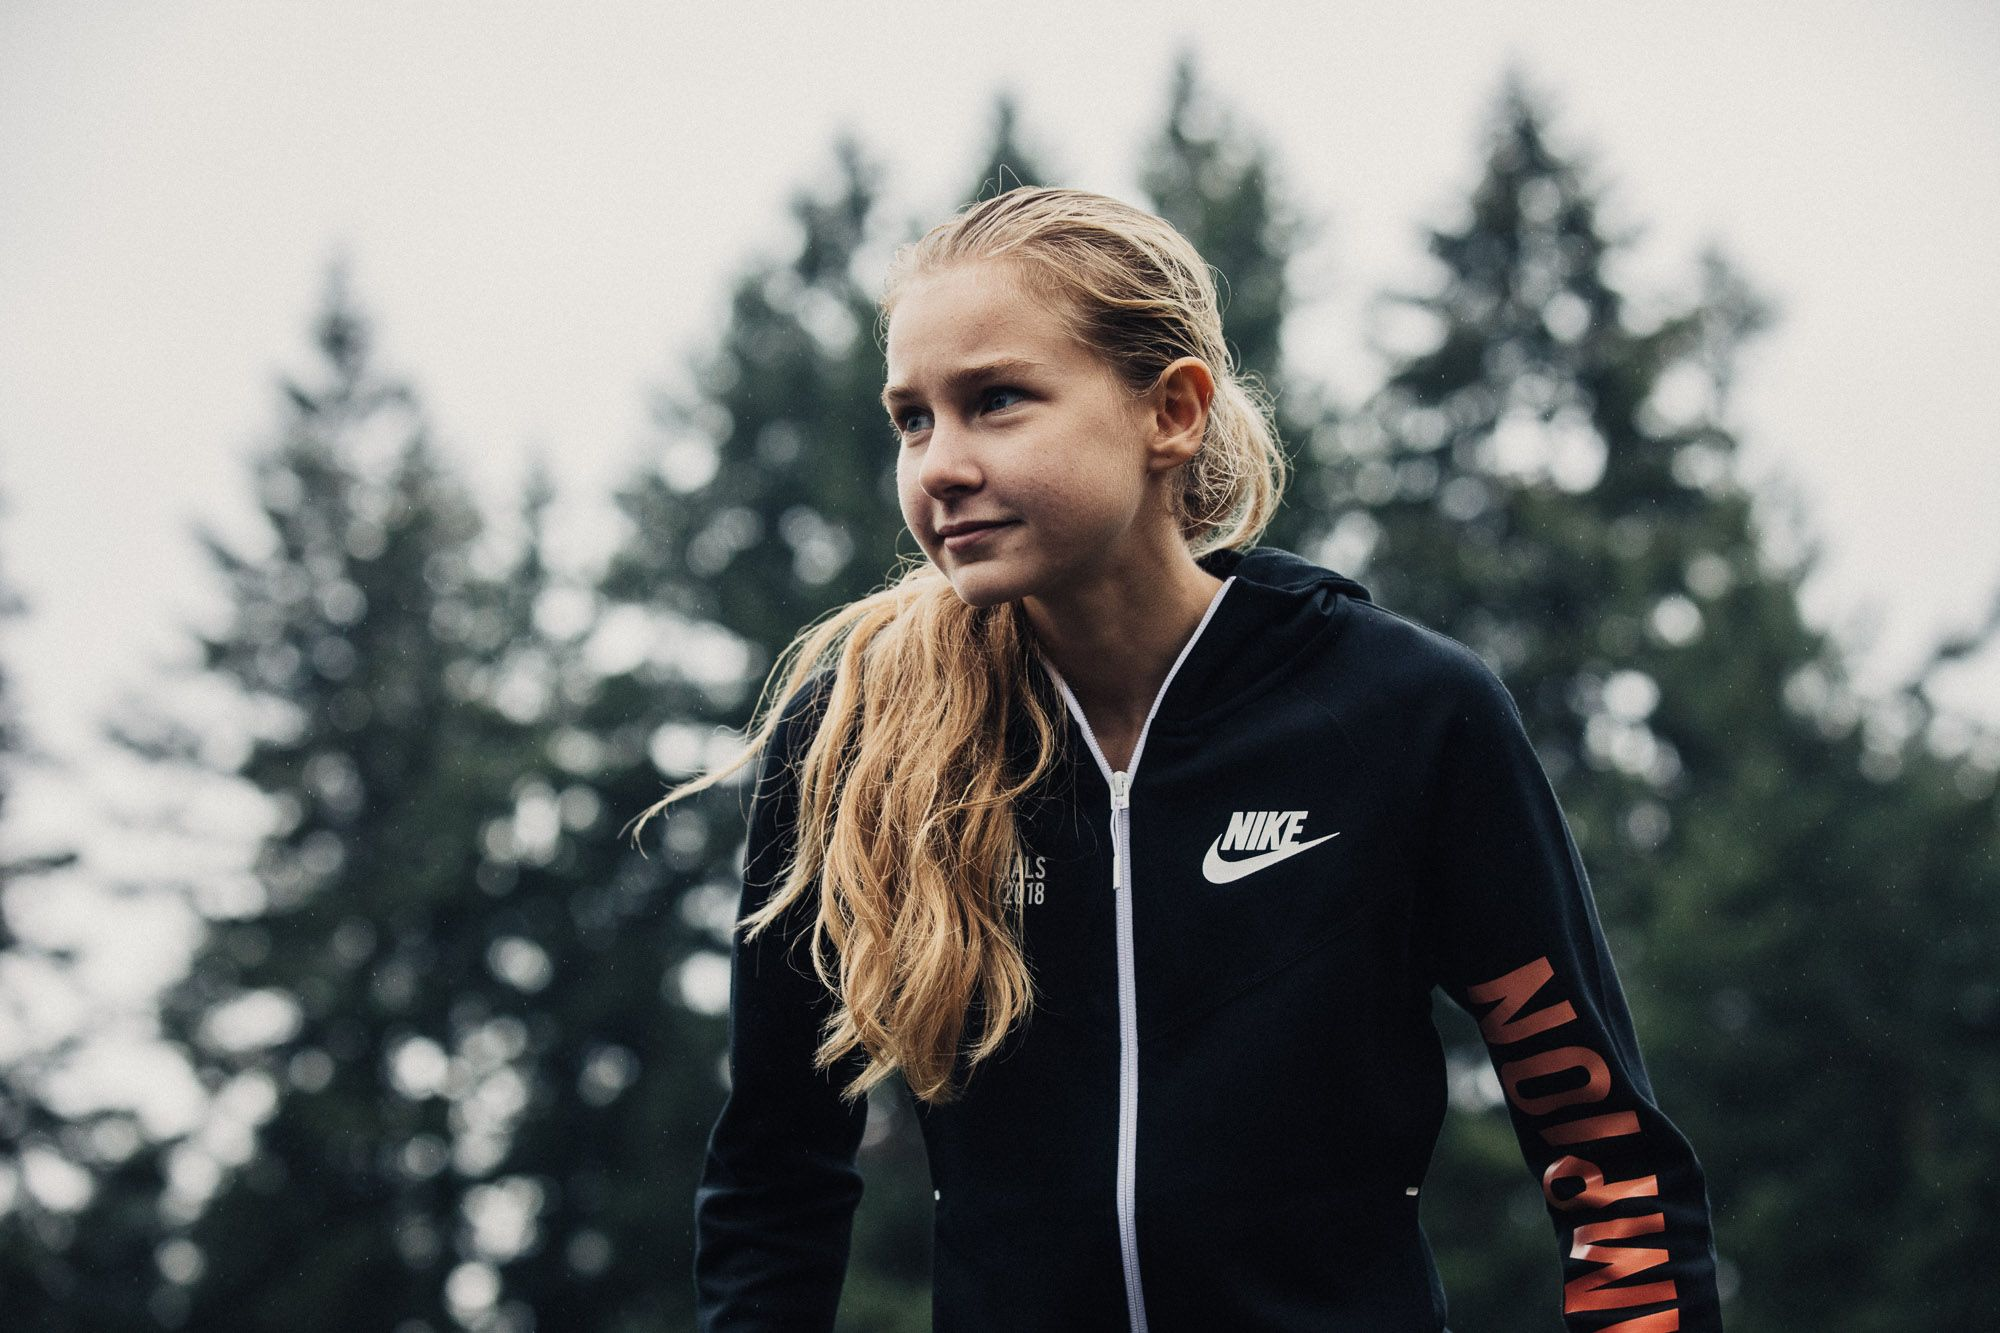 Teen Star Looks Toward Olympic Trials—While Shying Away From the Spotlight